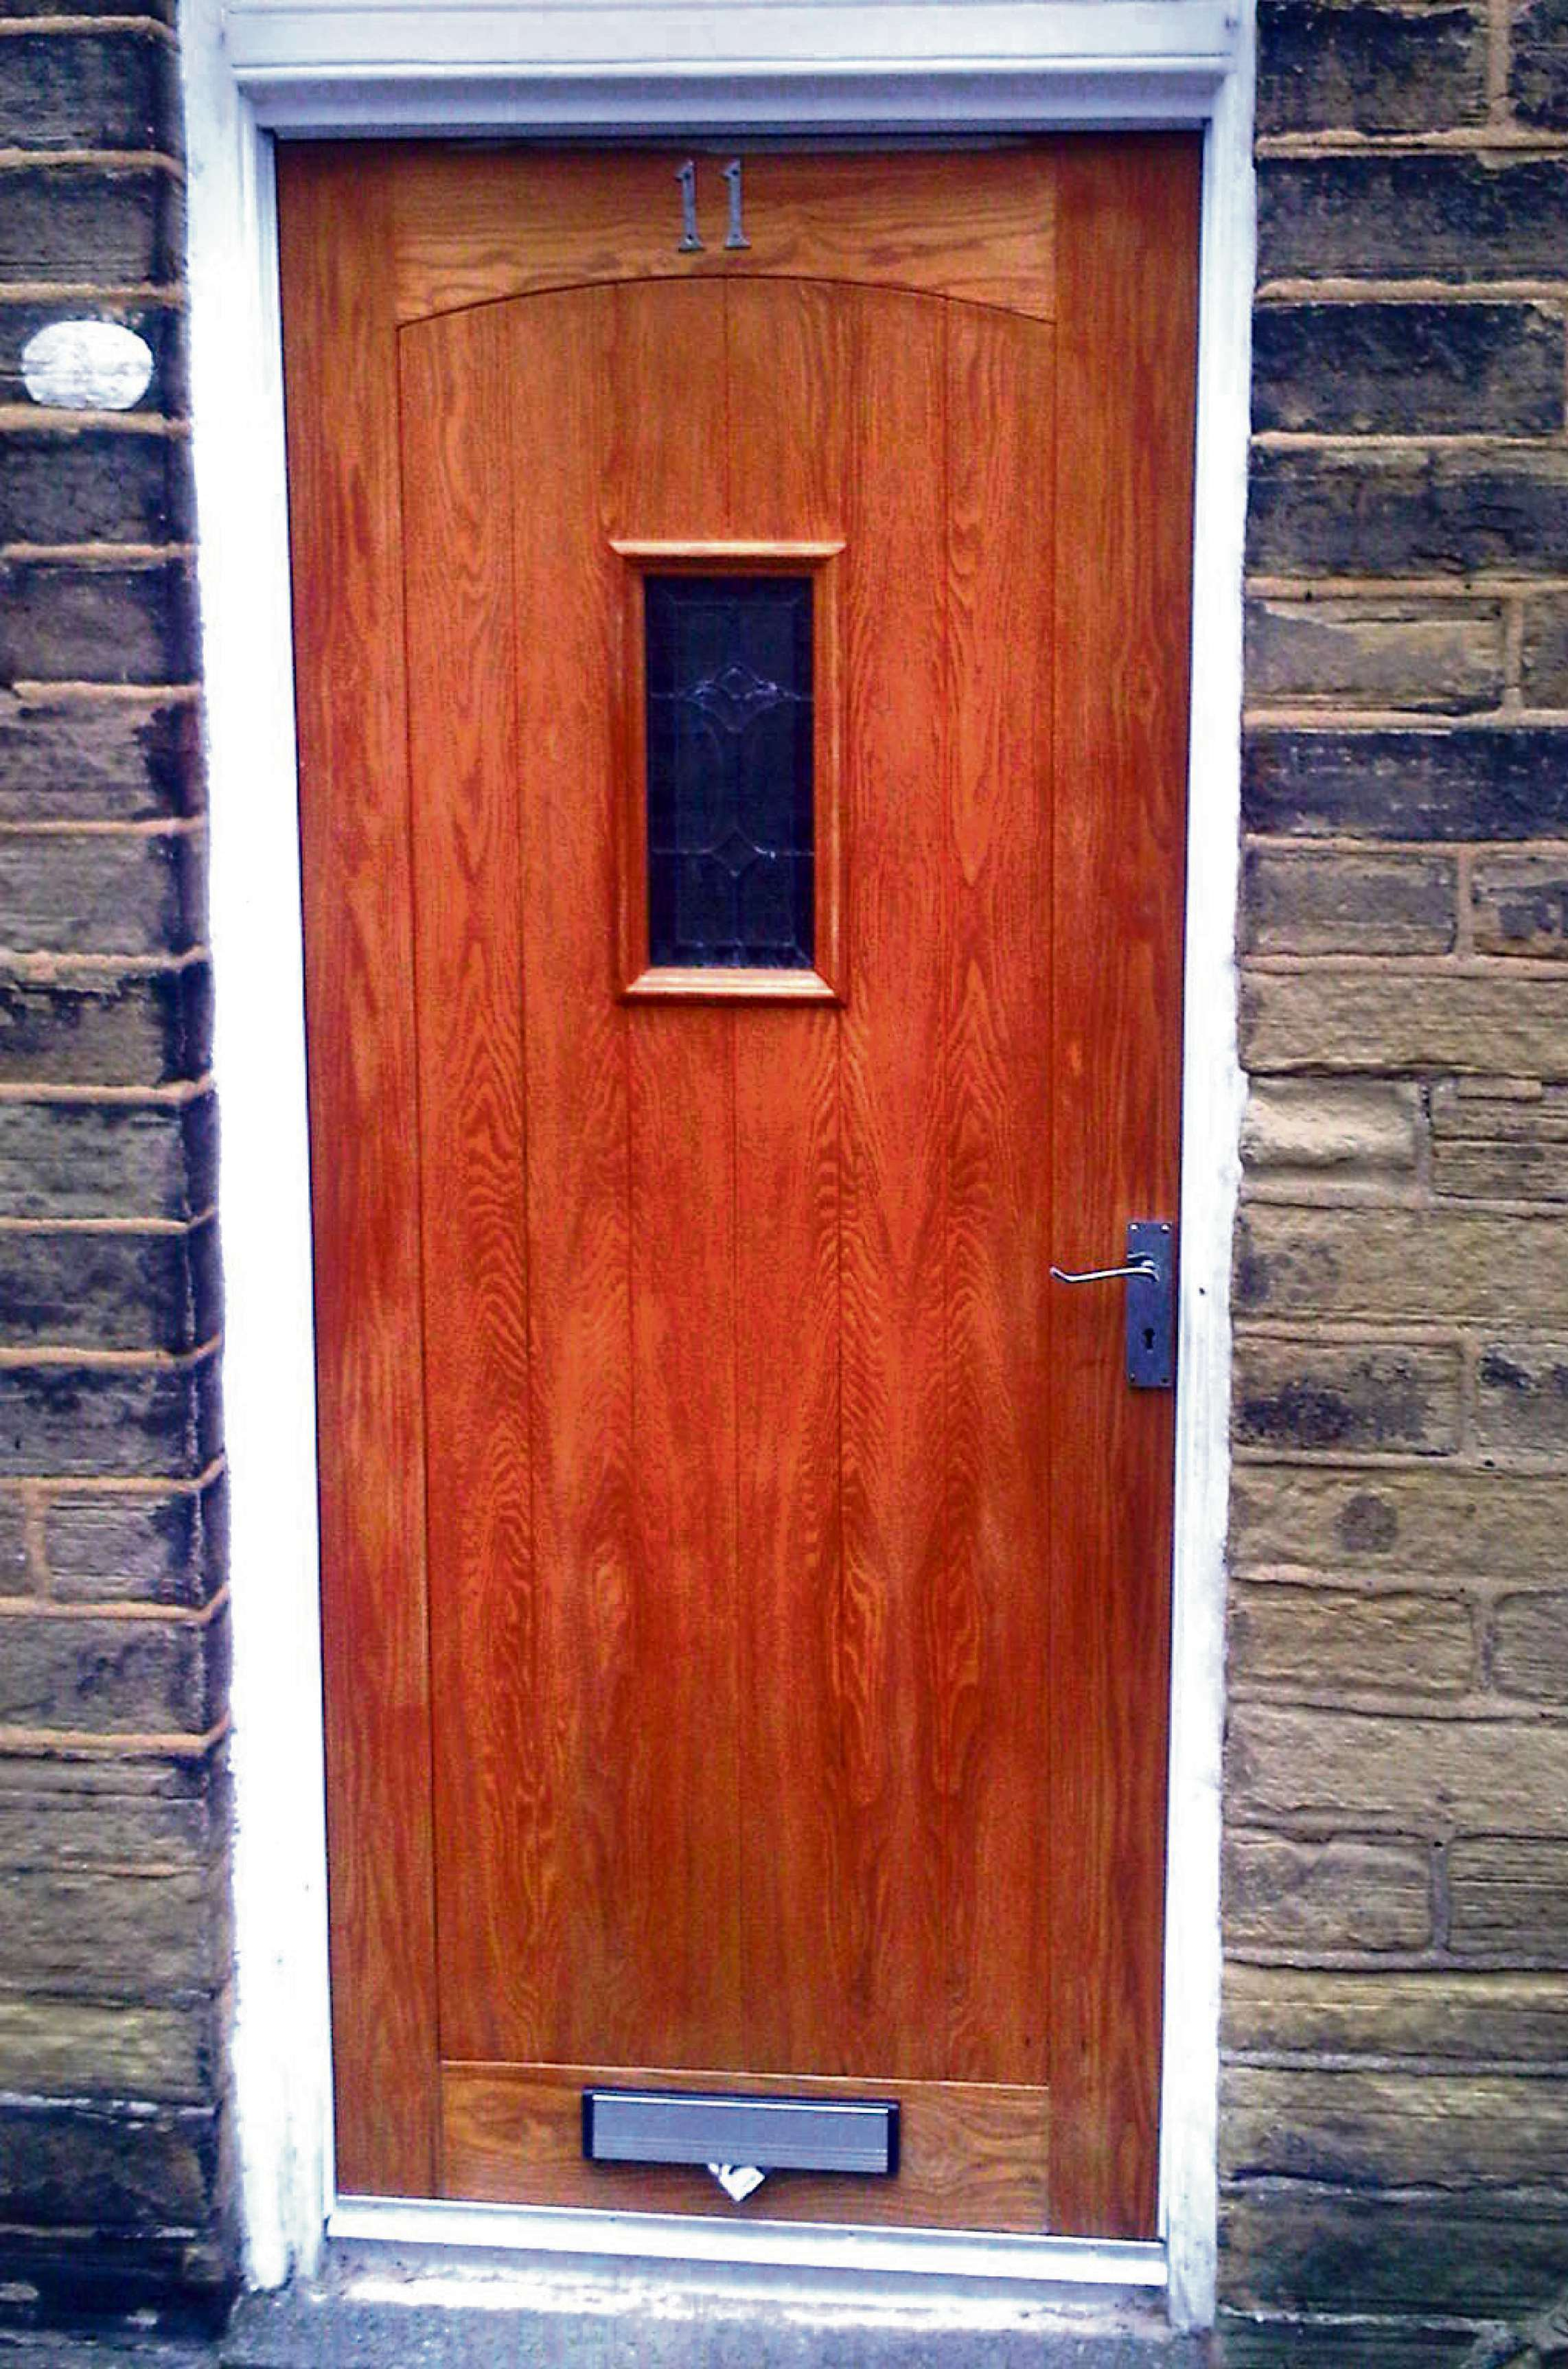 Enforcement warning by Council as it cracks down on u0027rogueu0027 front doors fitted to homes in historic Saltaire & Enforcement warning by Council as it cracks down on u0027rogueu0027 front ...